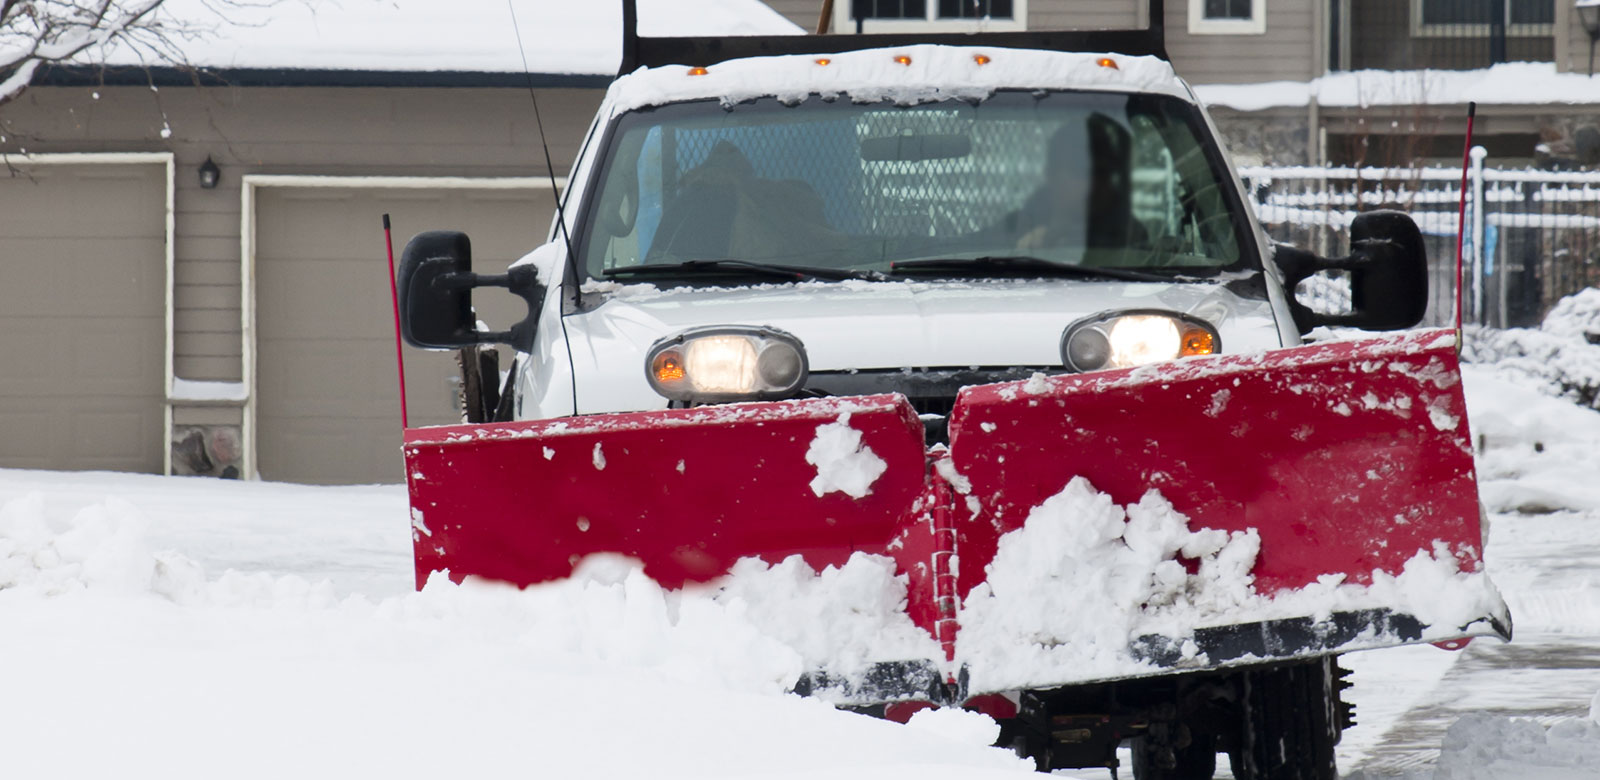 Red plow on white truck in snow in front of a building